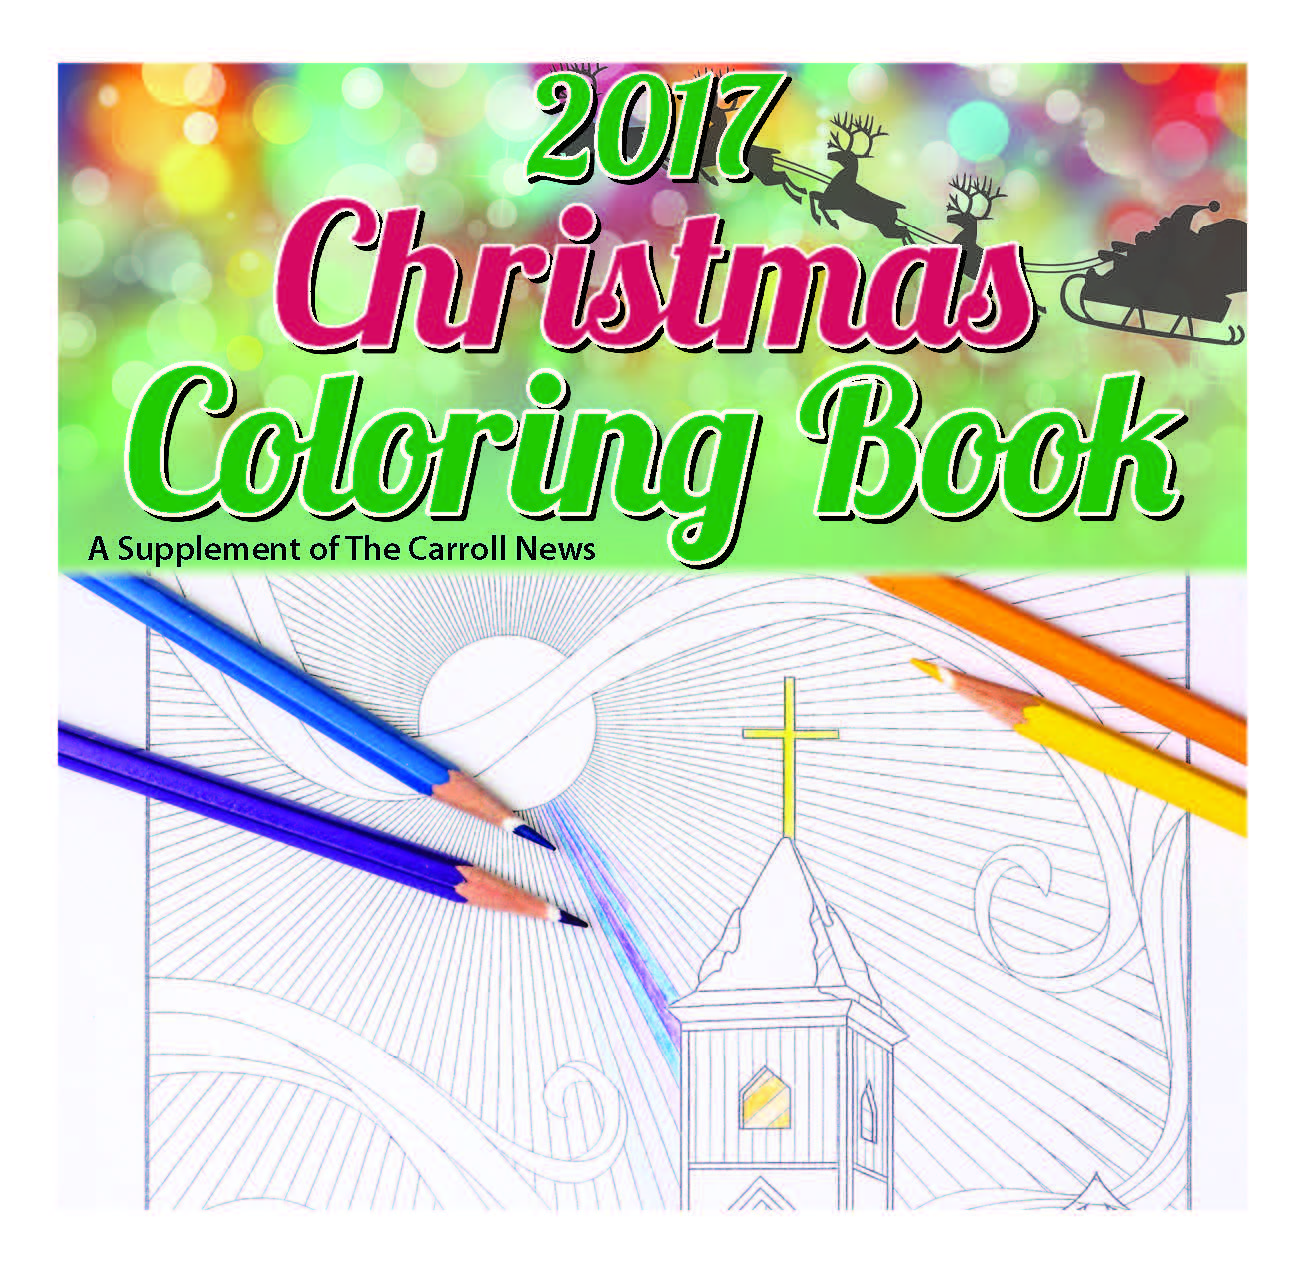 Carroll Christmas Coloring Book